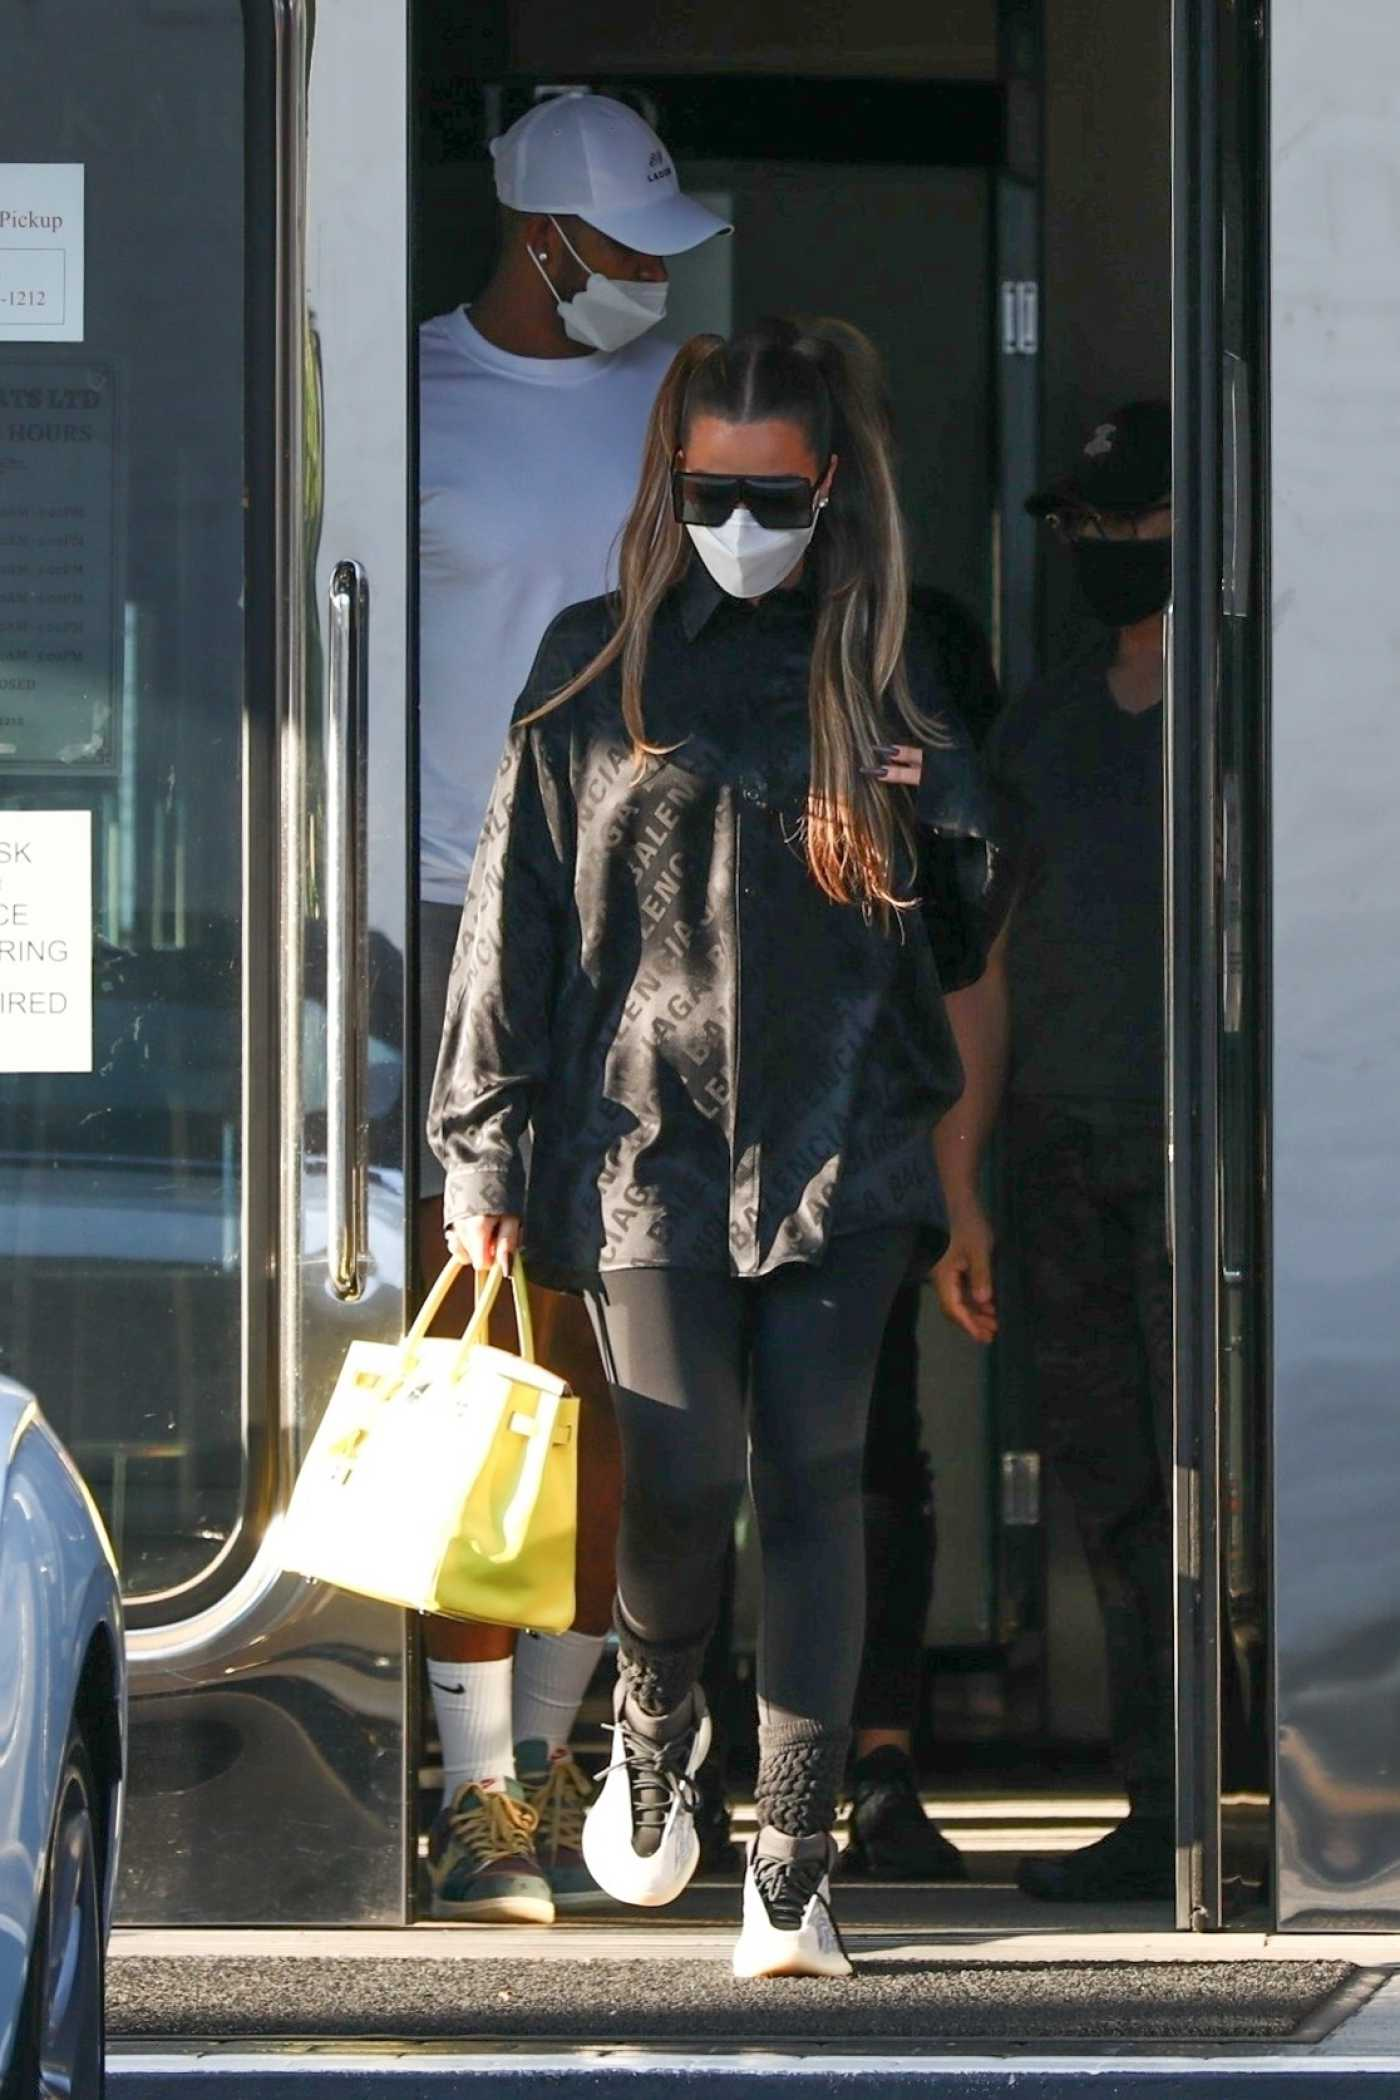 Khloe Kardashian in a Protective Mask Leaves XIV Karats in Beverly Hills 09/25/2020